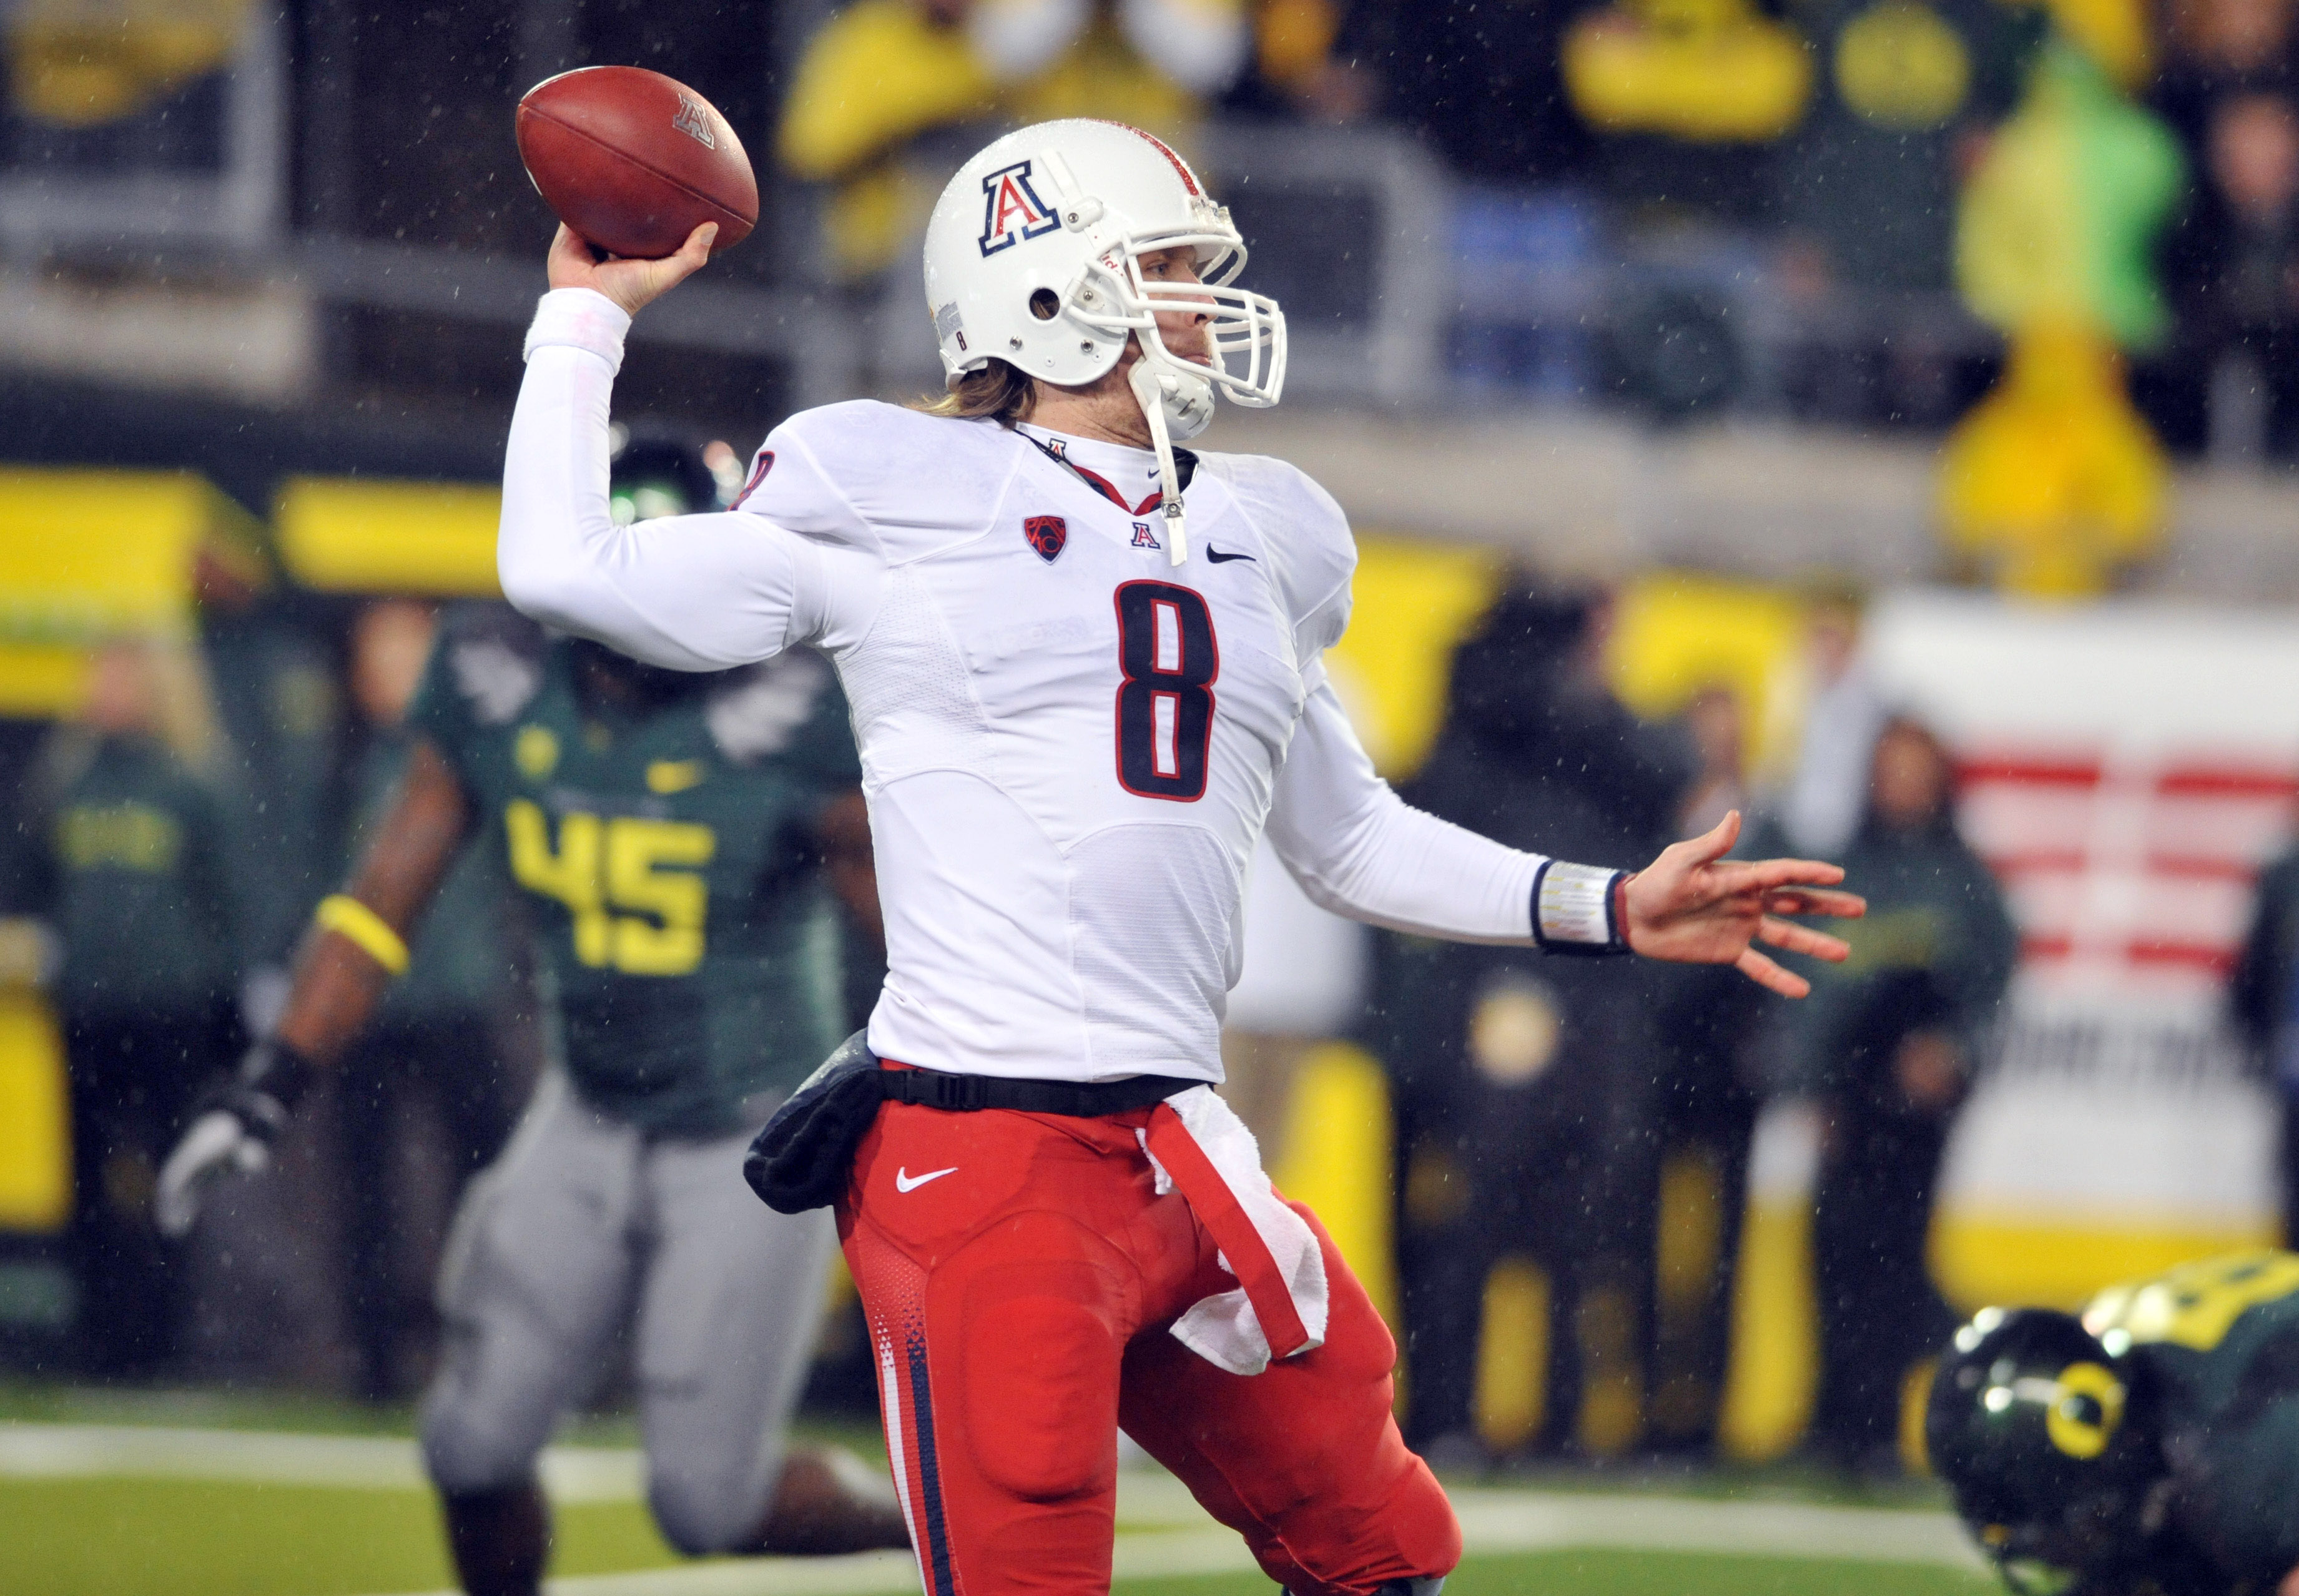 EUGENE, OR - NOVEMBER 26: Quarterback Nick Foles #8 of the Arizona Wildcats passes the ball in the second quarter of the game against the Arizona Wildcats at Autzen Stadium on November 26, 2010 in Eugene, Oregon. (Photo by Steve Dykes/Getty Images)